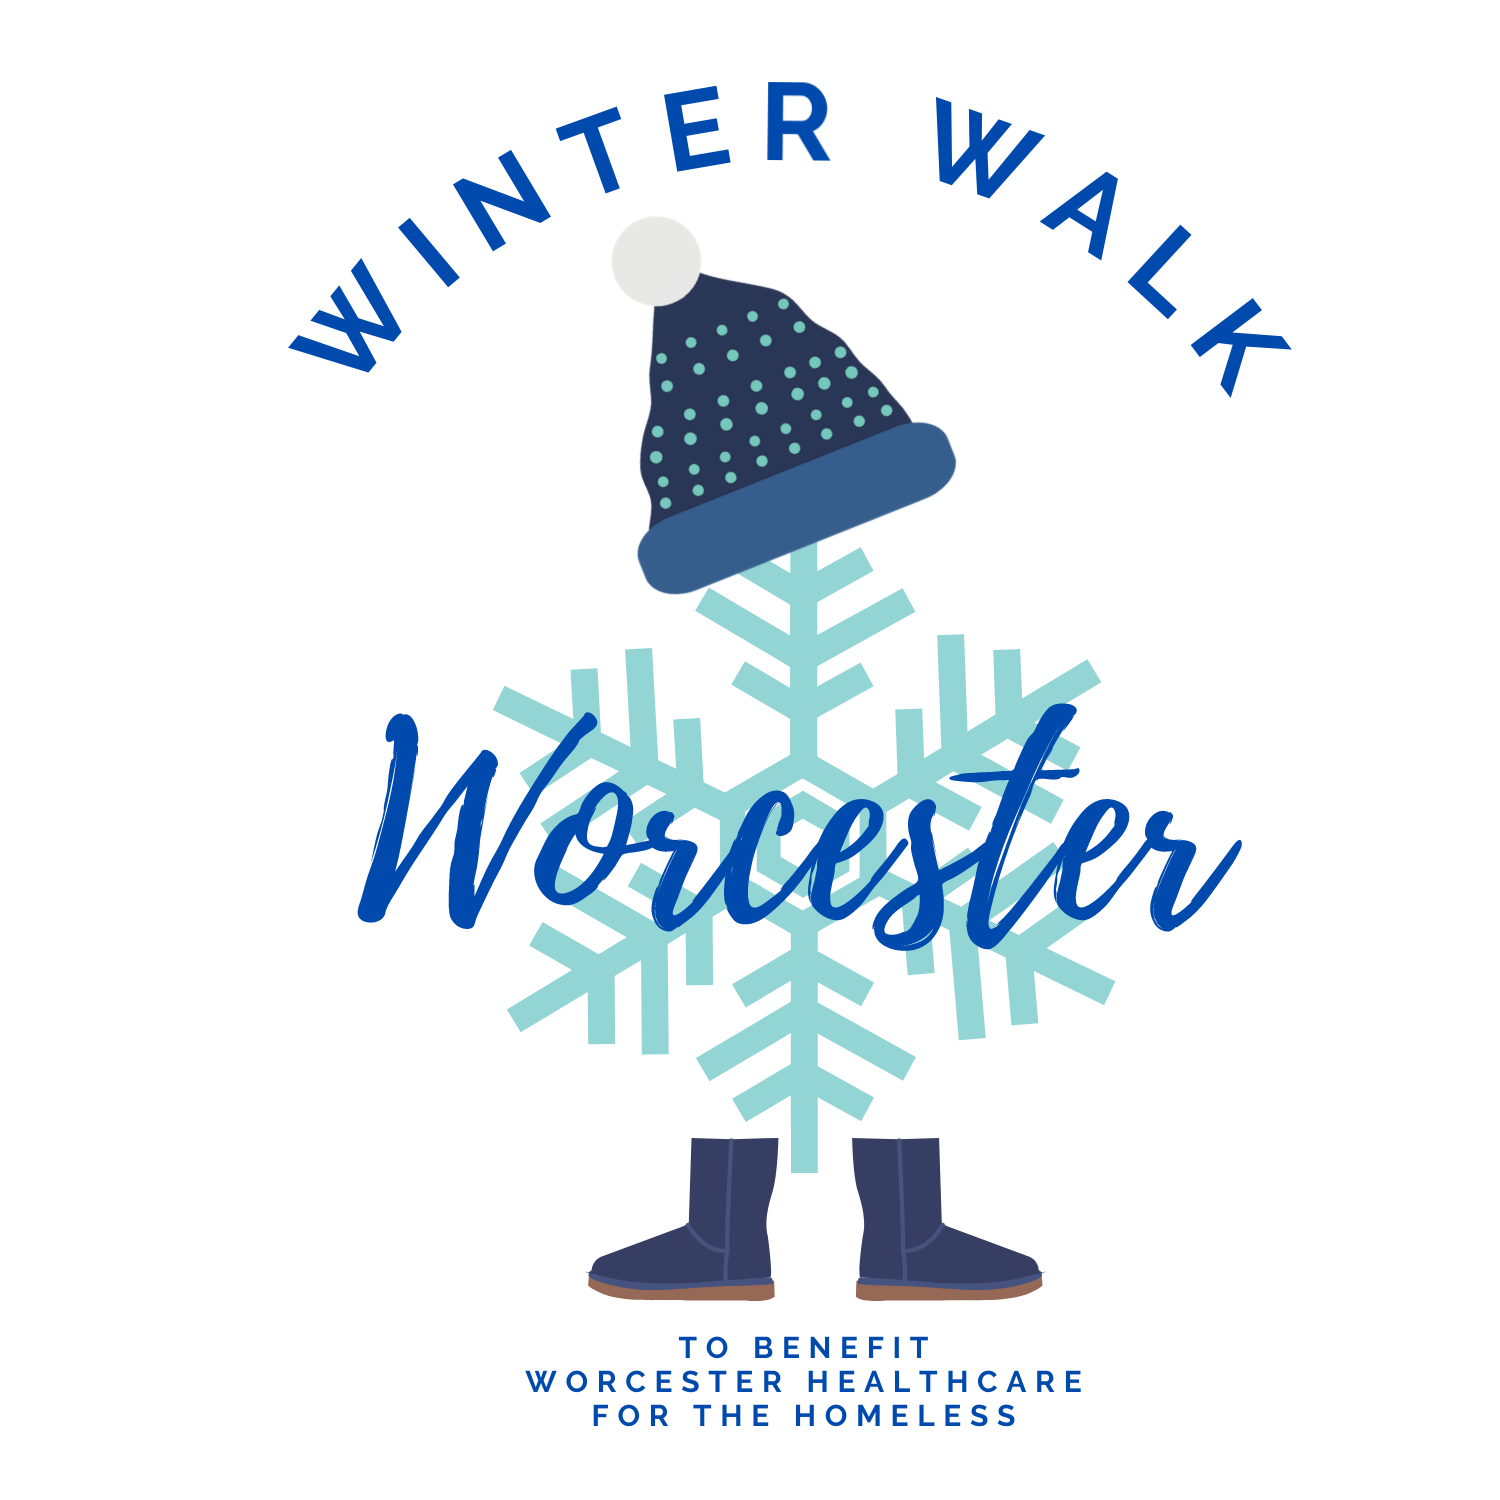 Worcester Health Care for the Homeless, a program of Family Health Center of Worcester, Inc.